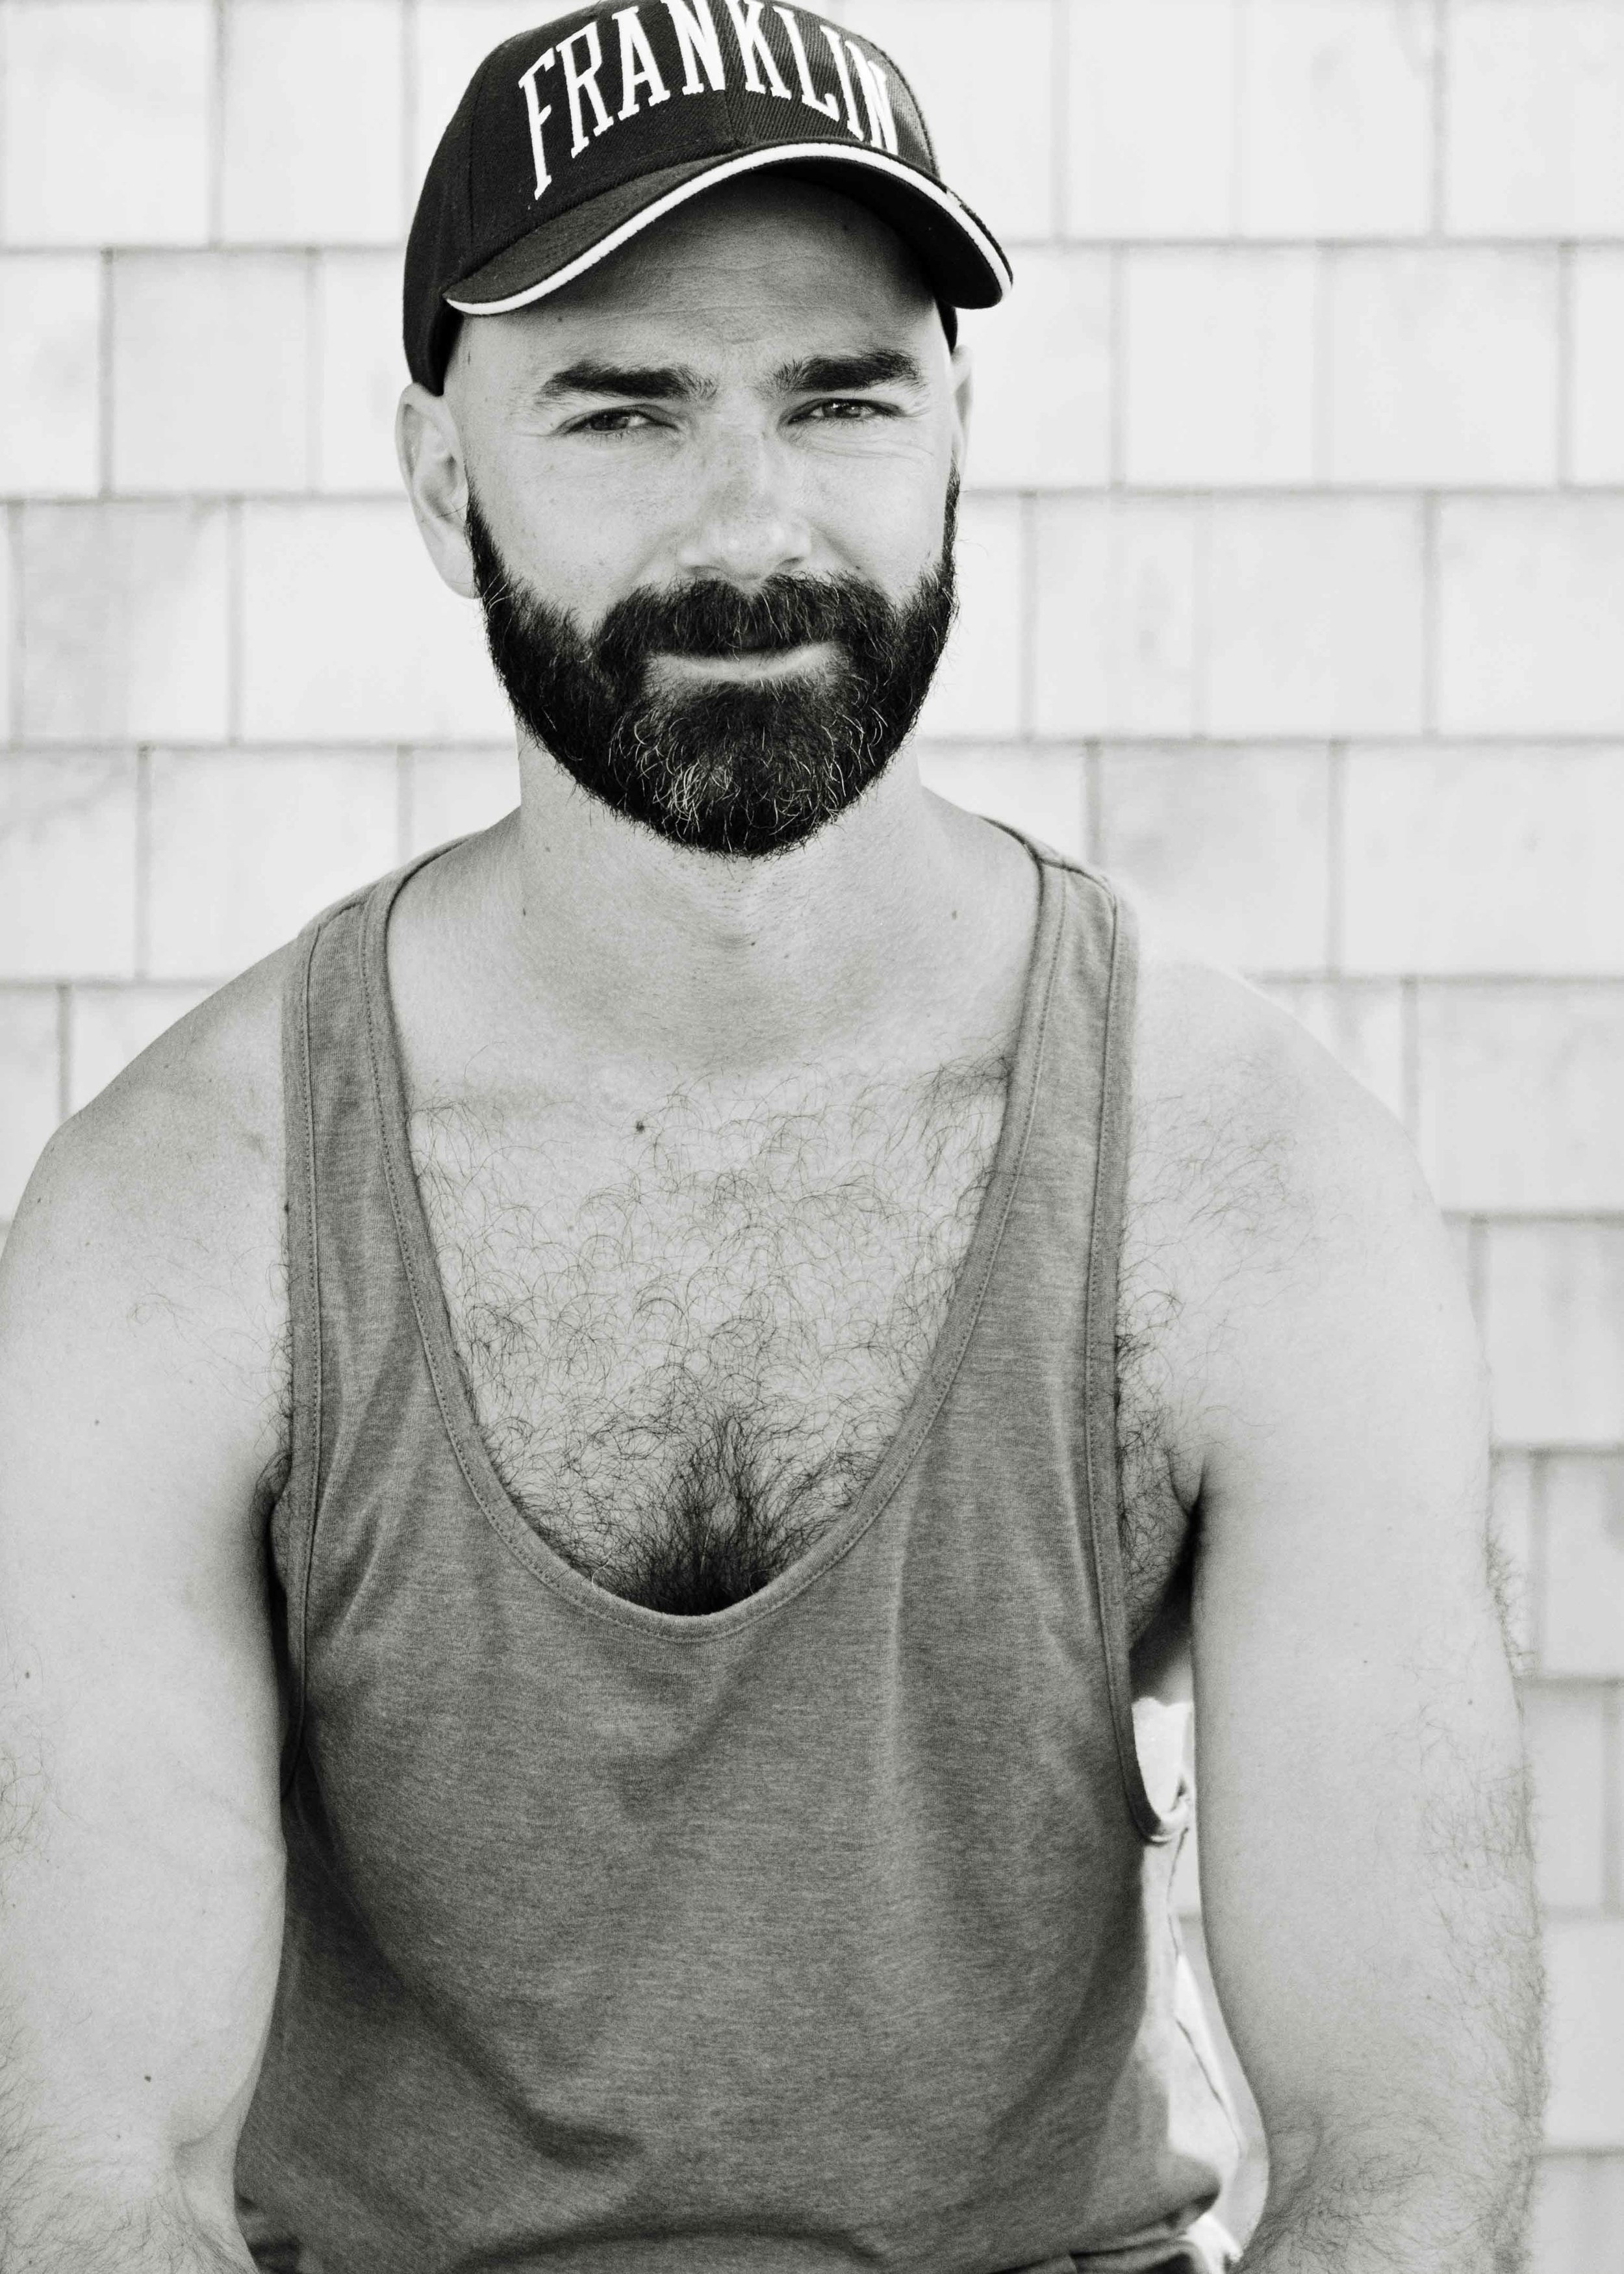 Portraits_In_Provincetown_2017_035 copy.JPG